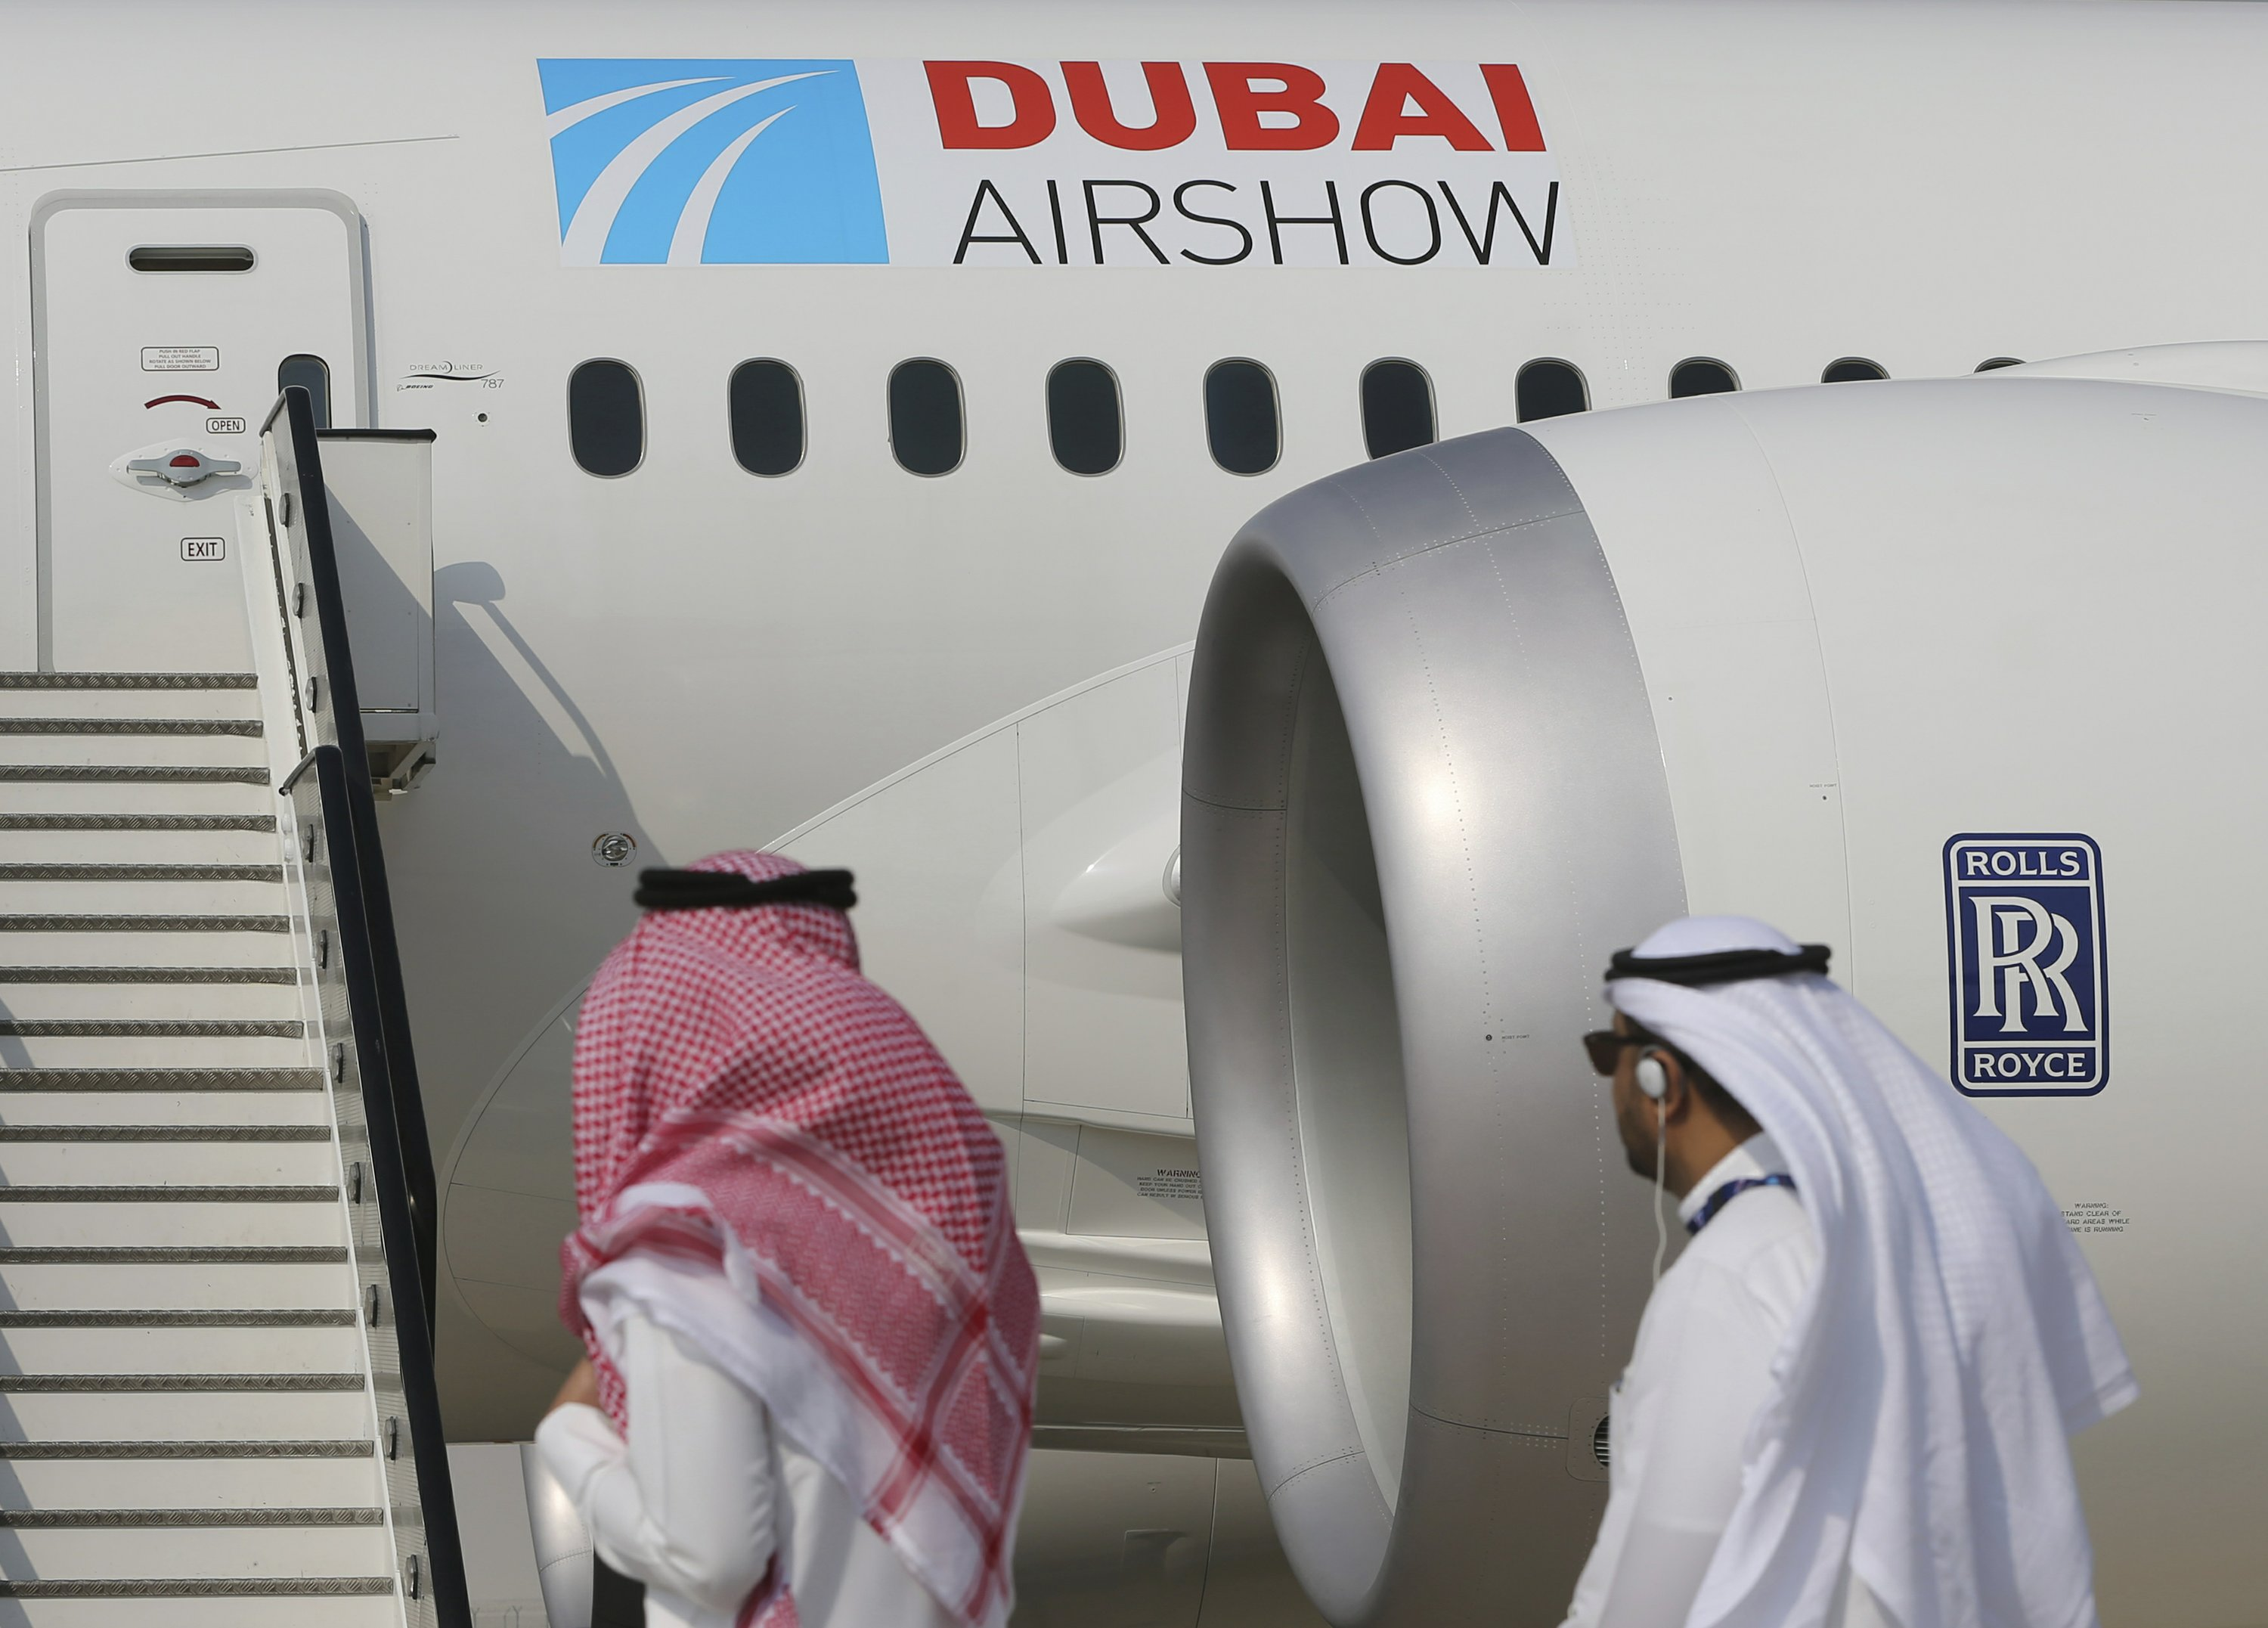 Dubai Air Show opens with Emirates' $15.1B Boeing buy